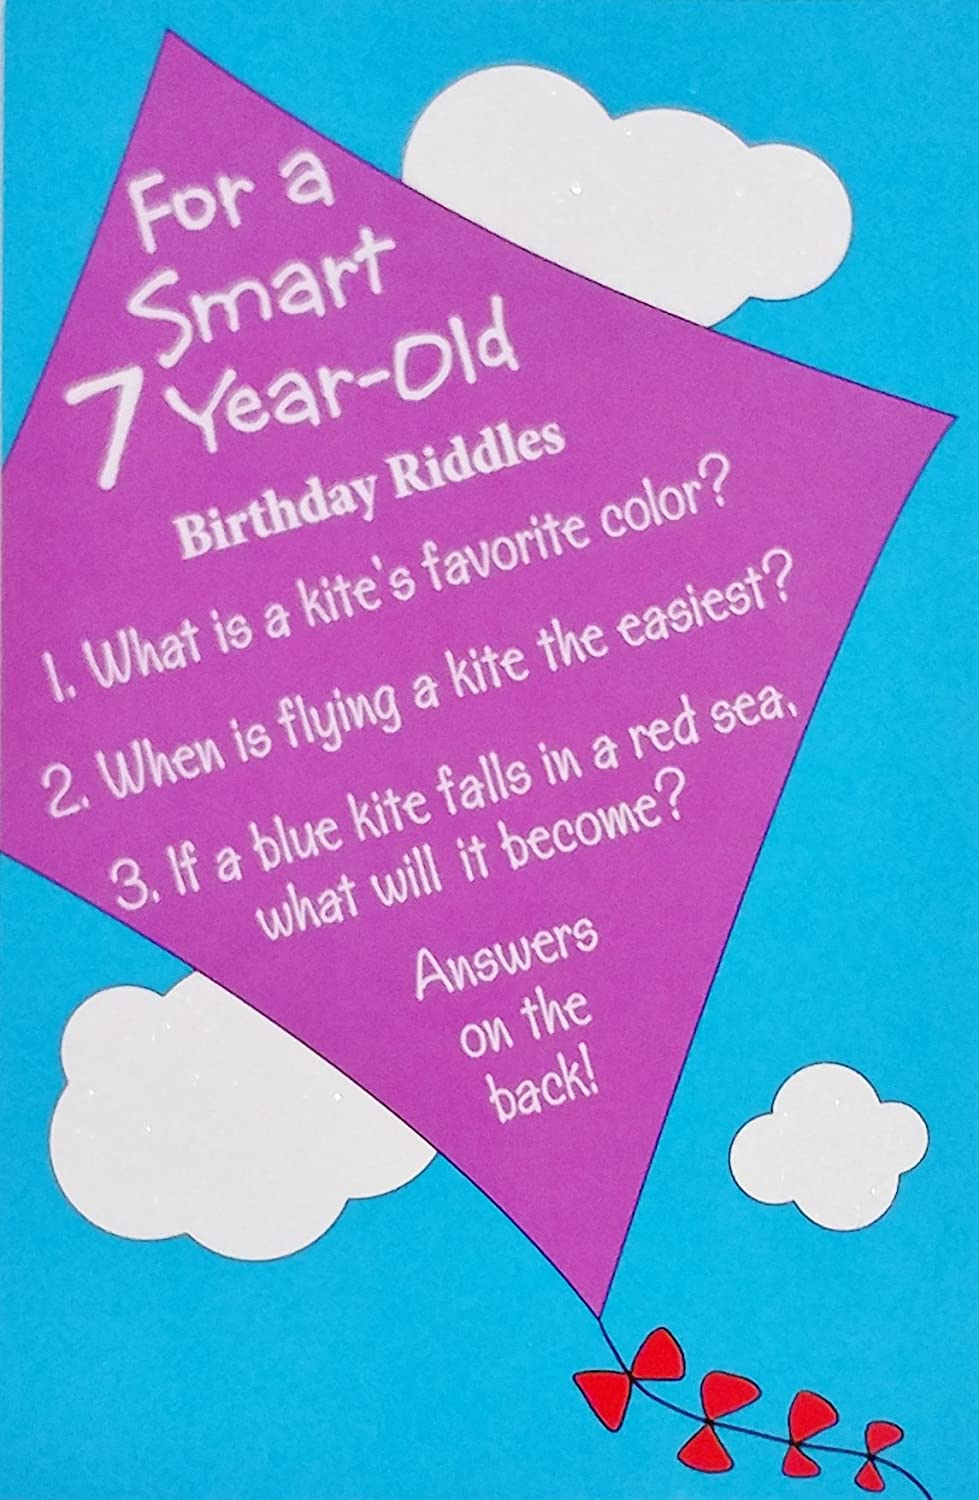 Amazon.com : For a Smart 7 Year Old Birthday Riddles Greeting Card ...